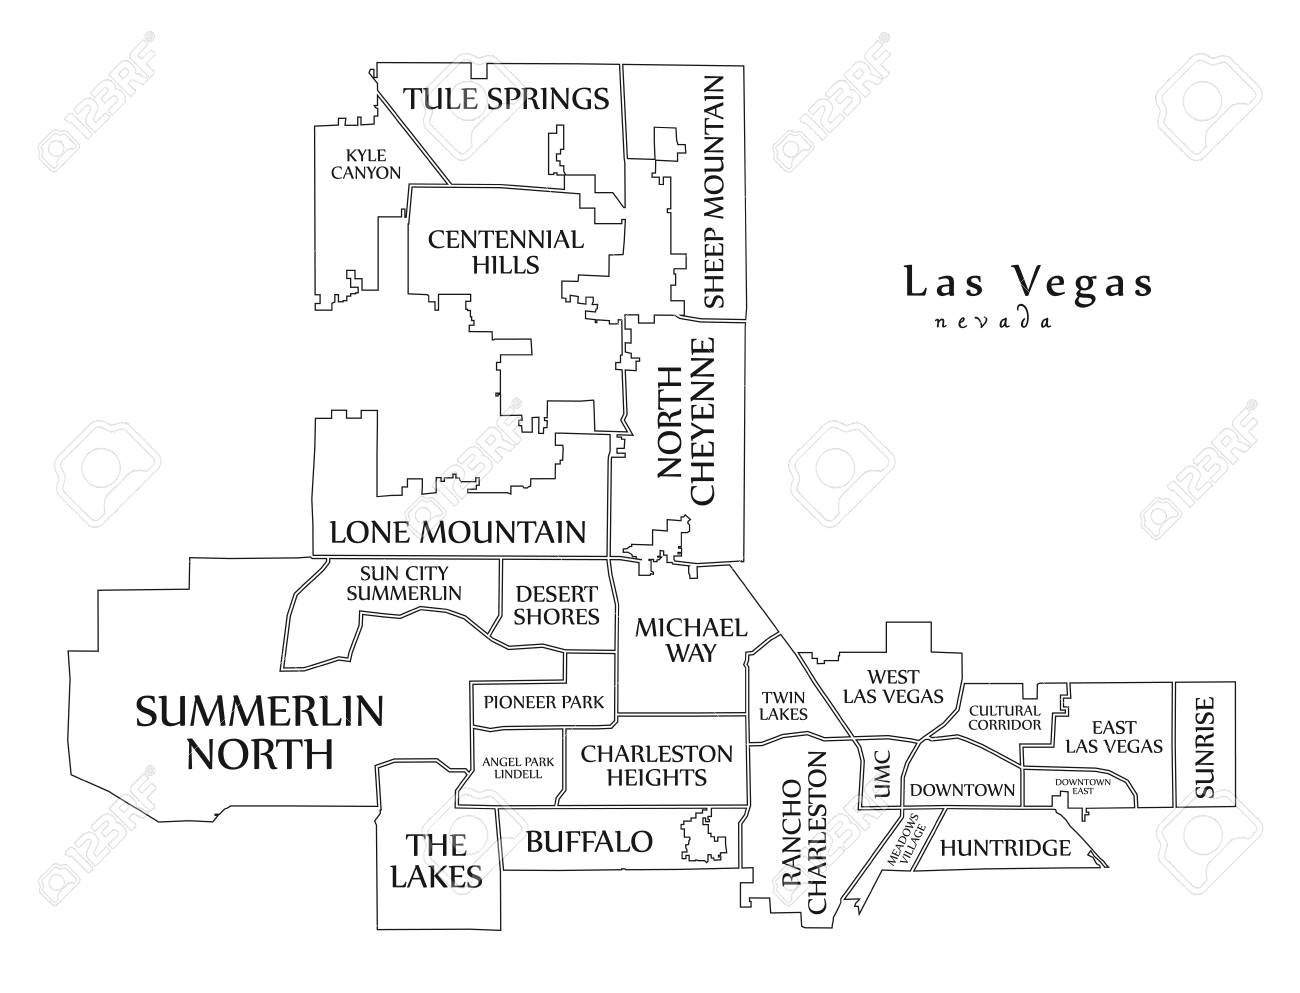 Modern City Map - Las Vegas Nevada City Of The USA With ...